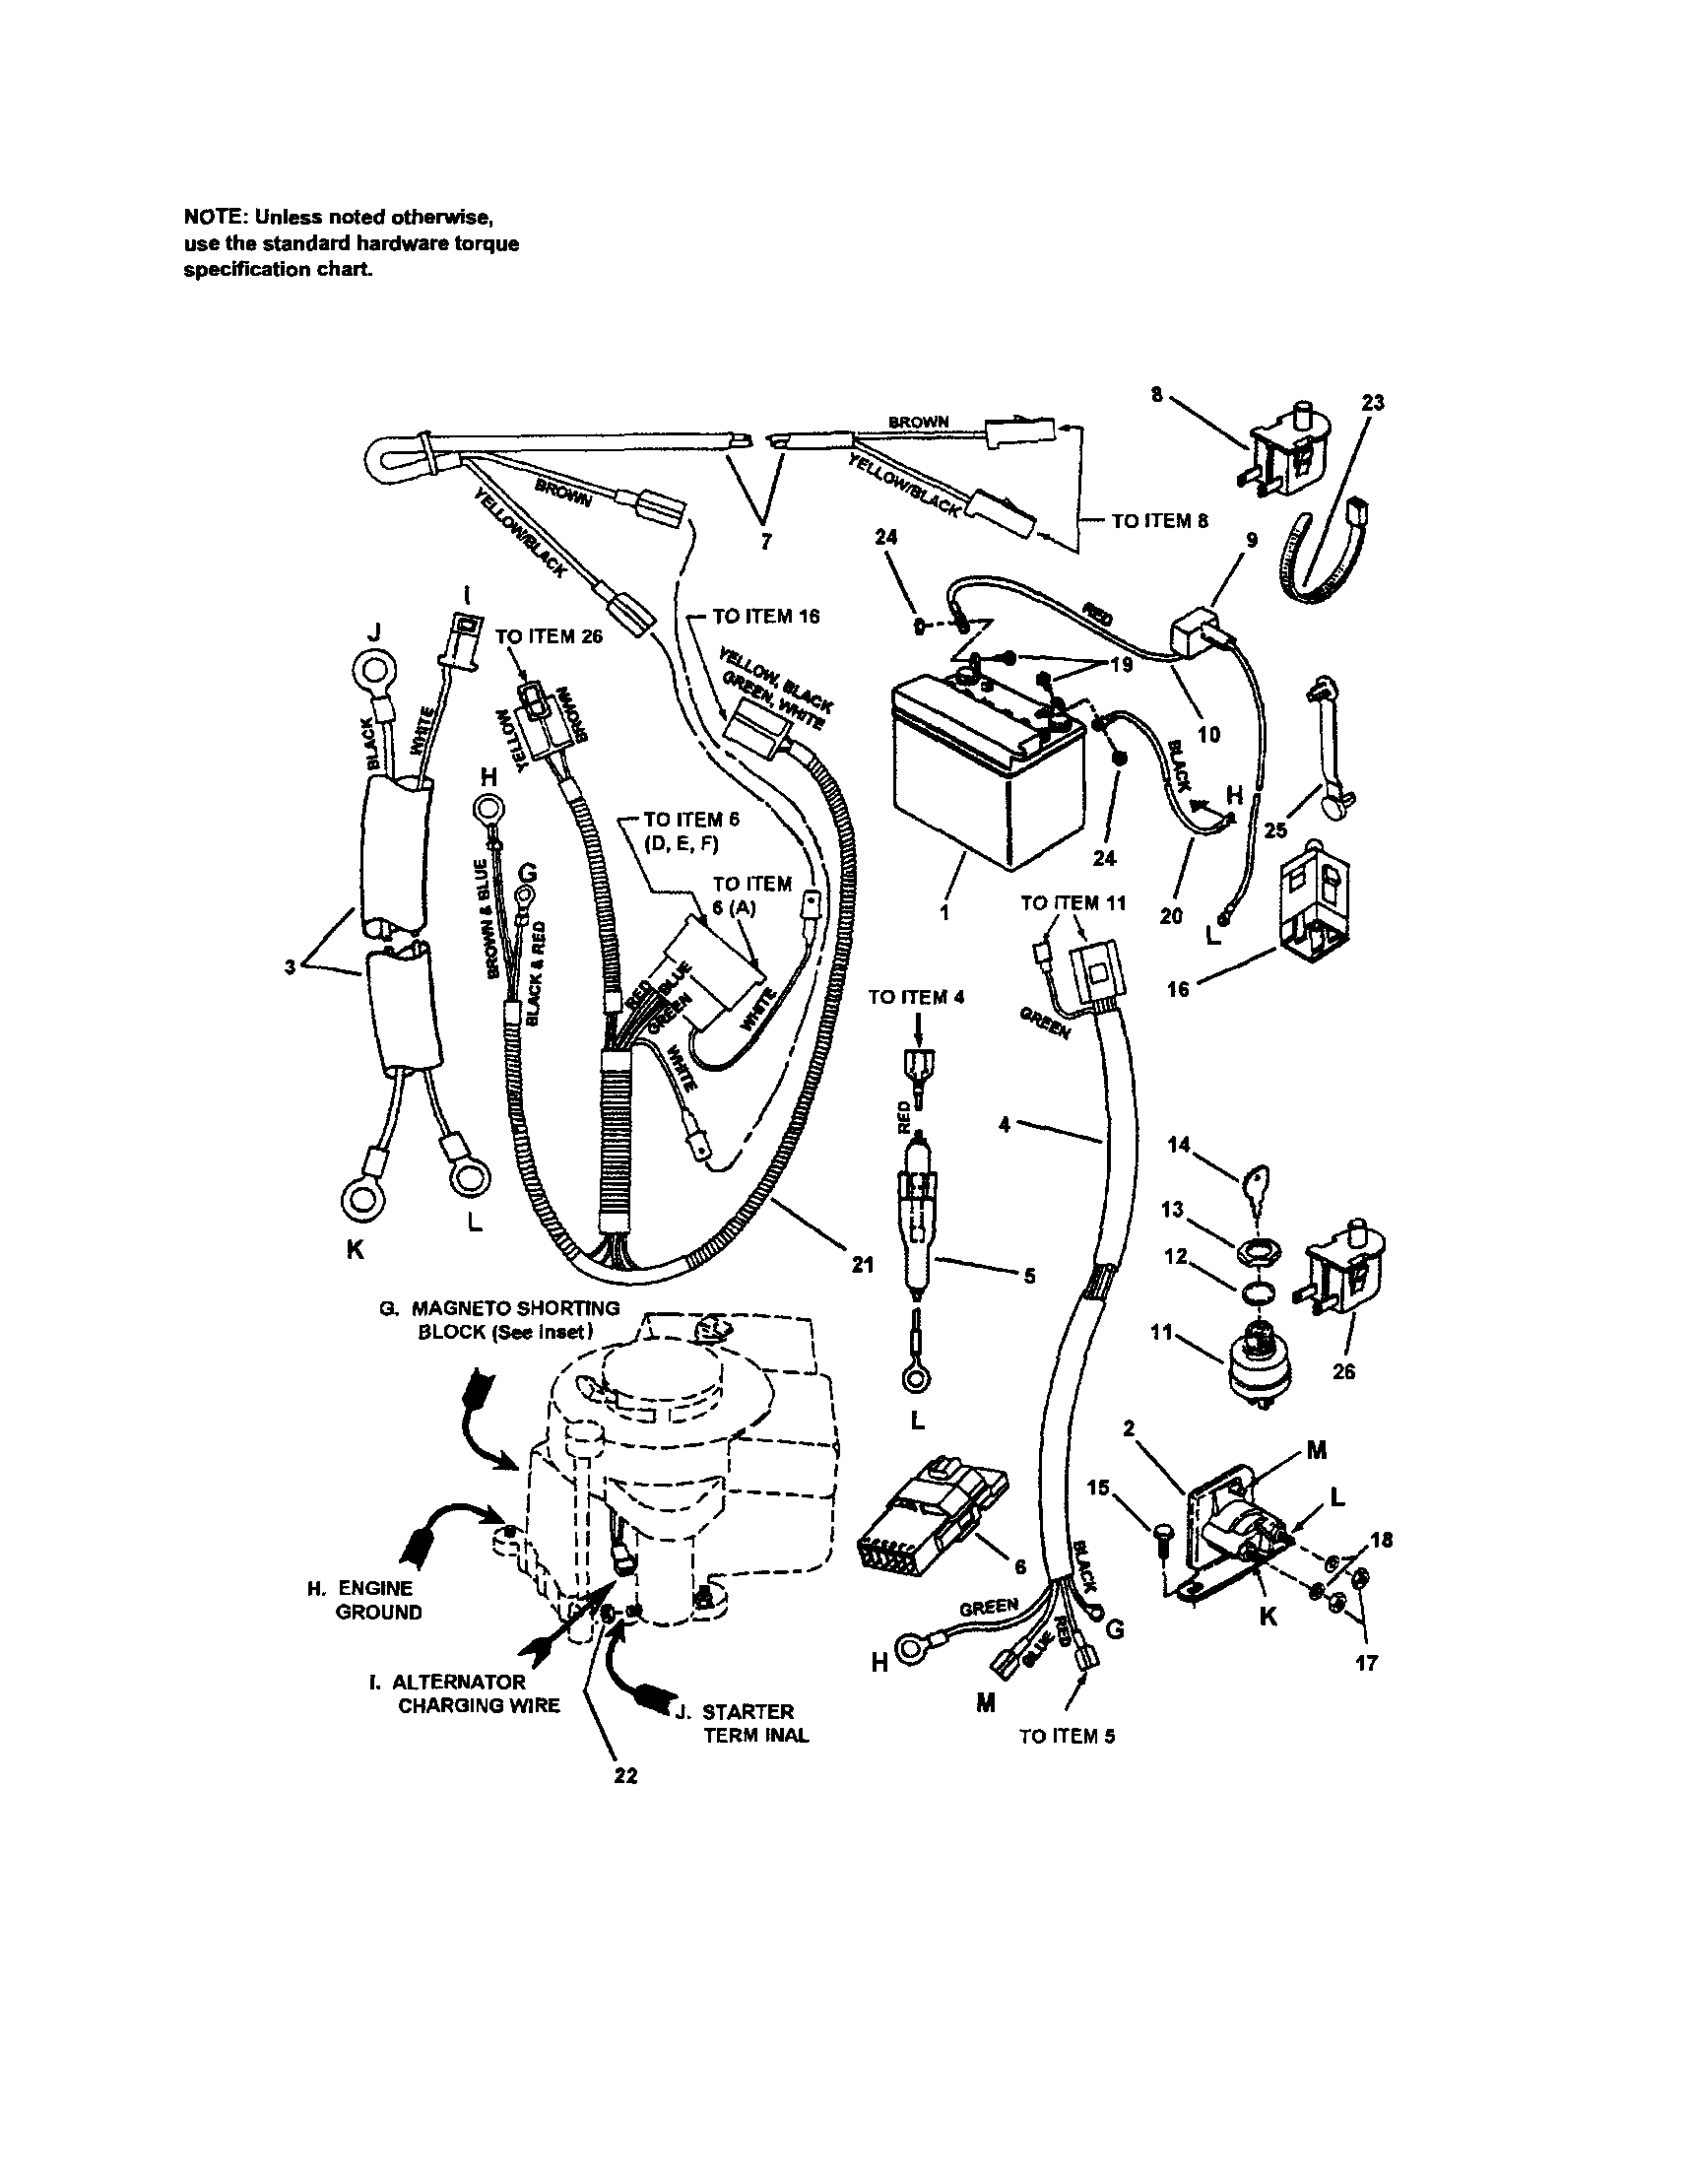 Briggs And Stratton Wiring Diagram 12Hp from static-cdn.imageservice.cloud